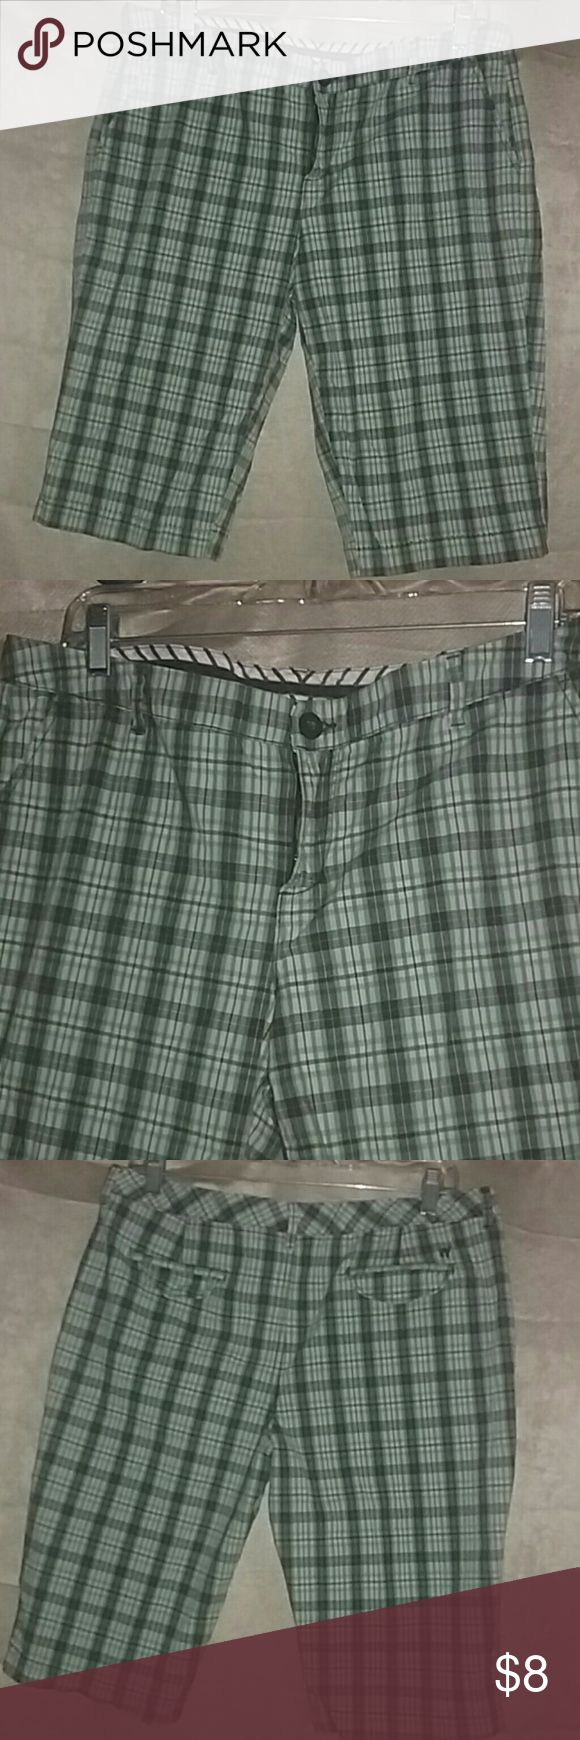 Red Camel Shorts 99% cotton 1% spandex worn once Red Camel Shorts